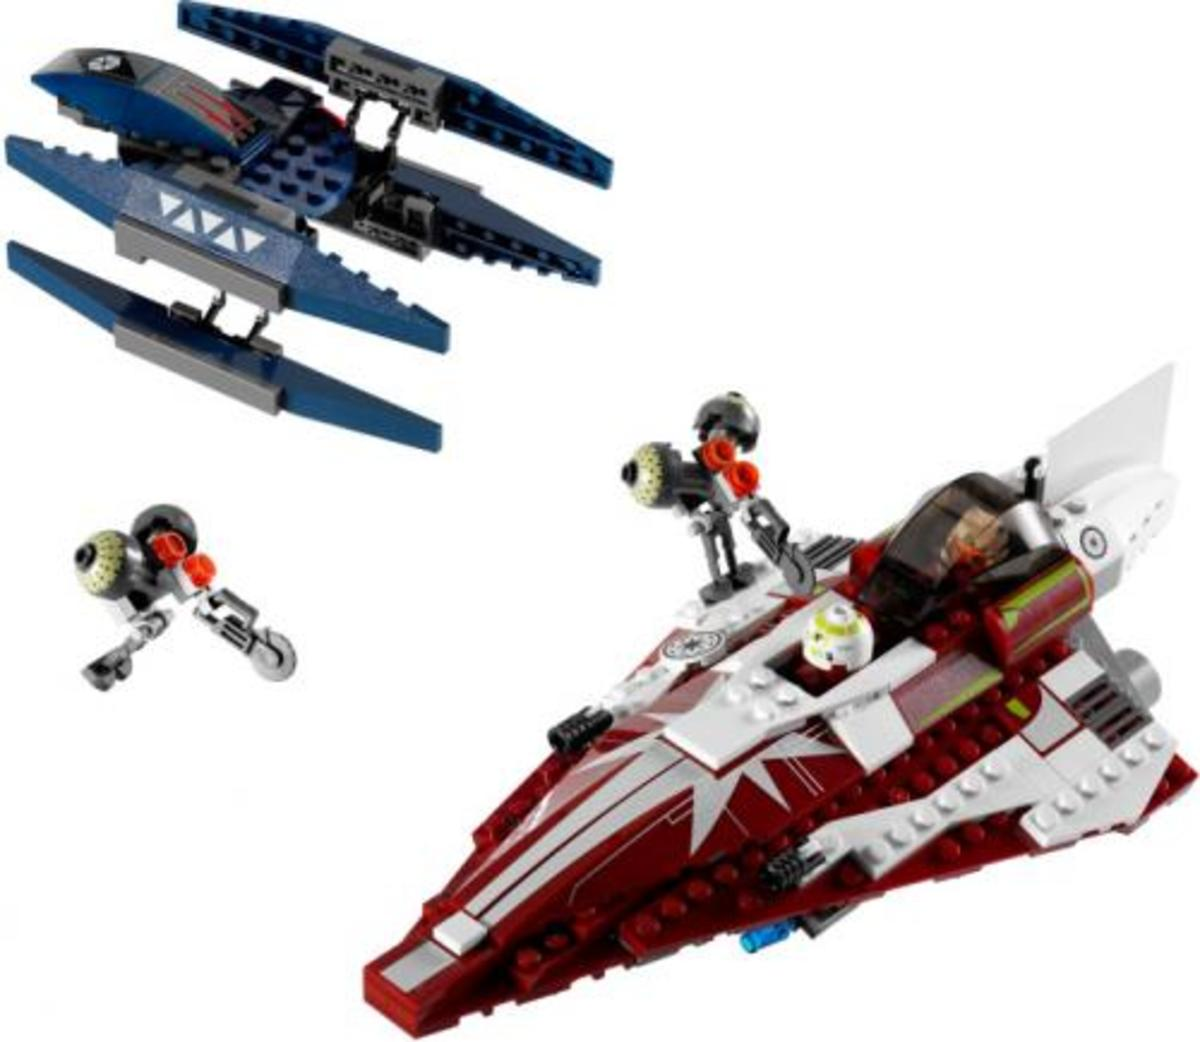 LEGO Star Wars Ahsoka's Starfighter & Vulture Droid 7751 Assembled